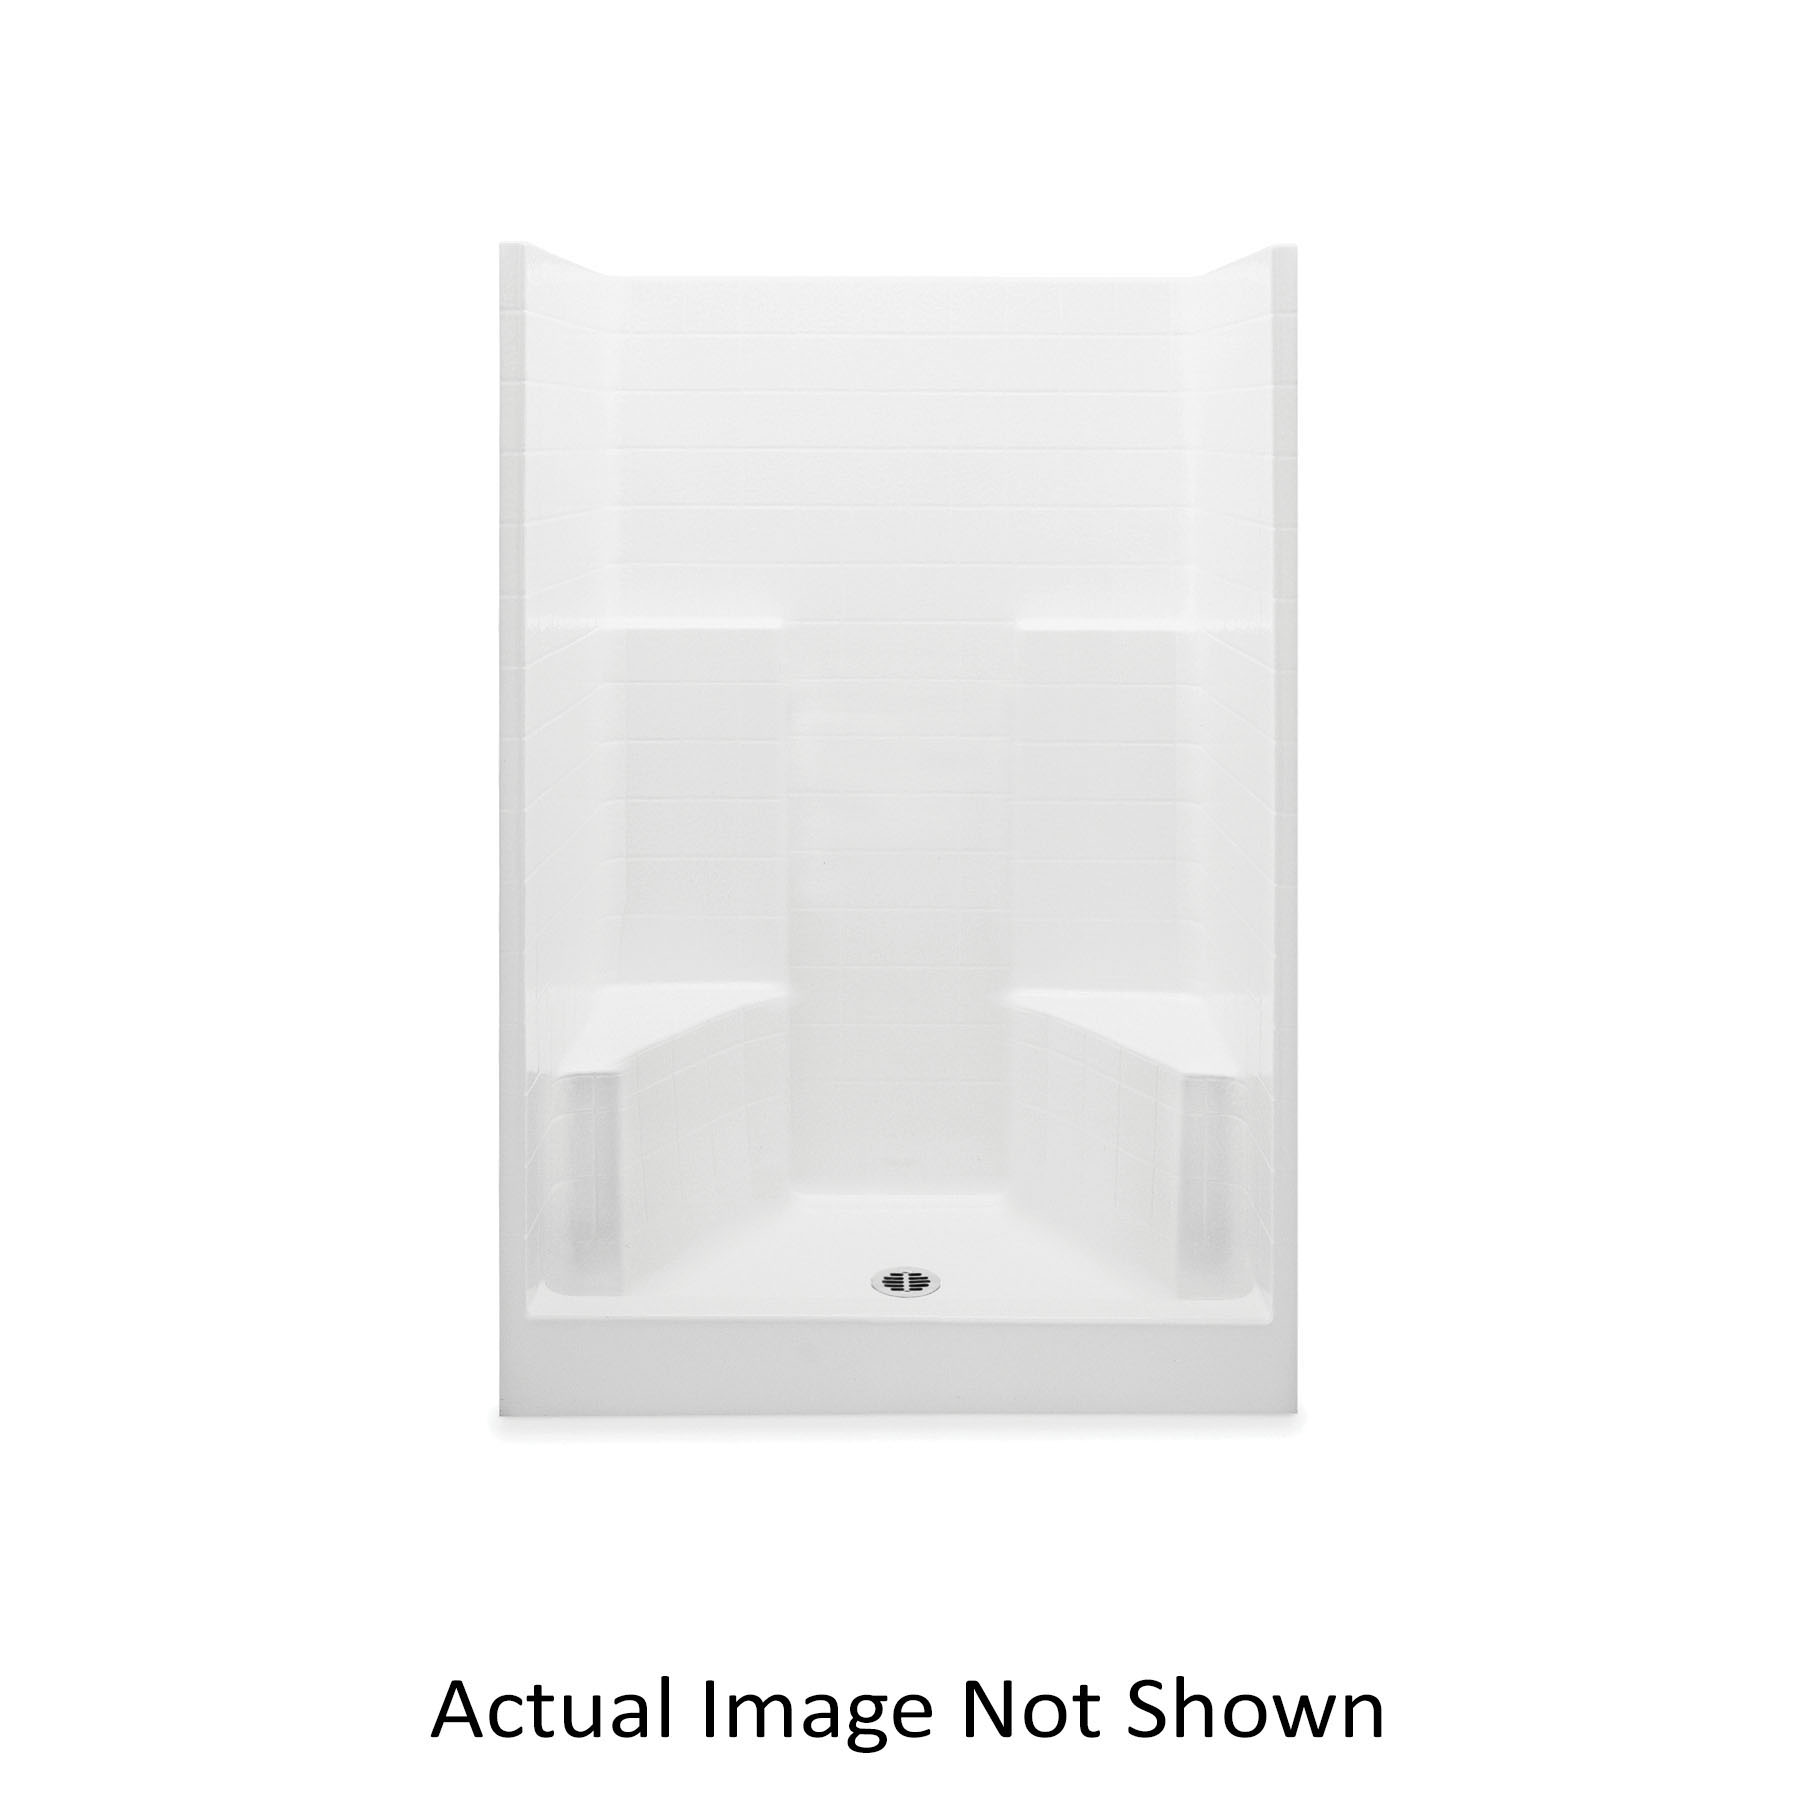 Consolidated Supply Co. | Aquatic 1483CTGN-WH Everyday 1-Piece ...